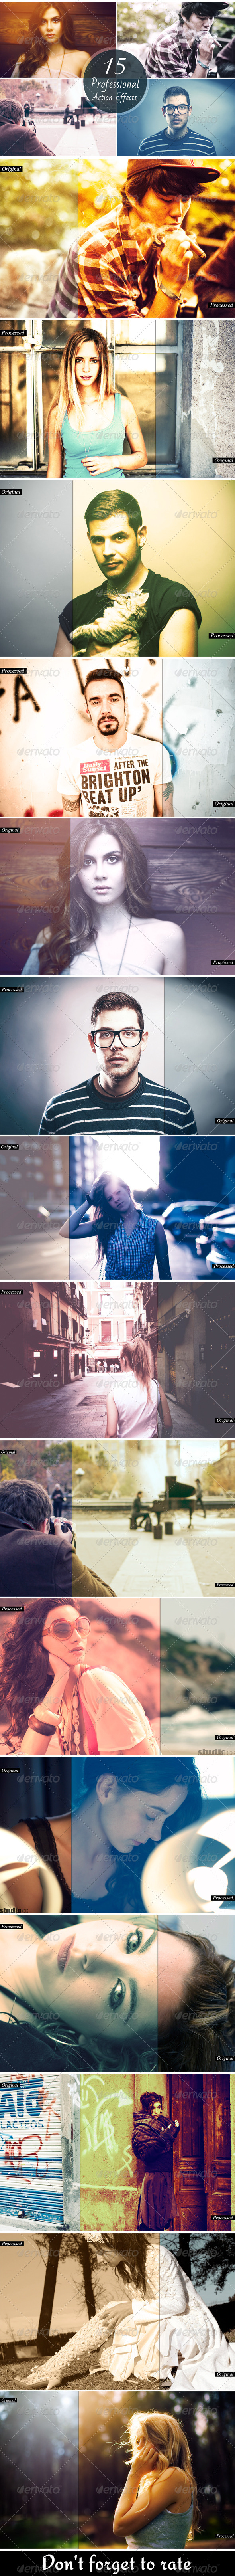 GraphicRiver 15 Professional Actions Effects 6288017